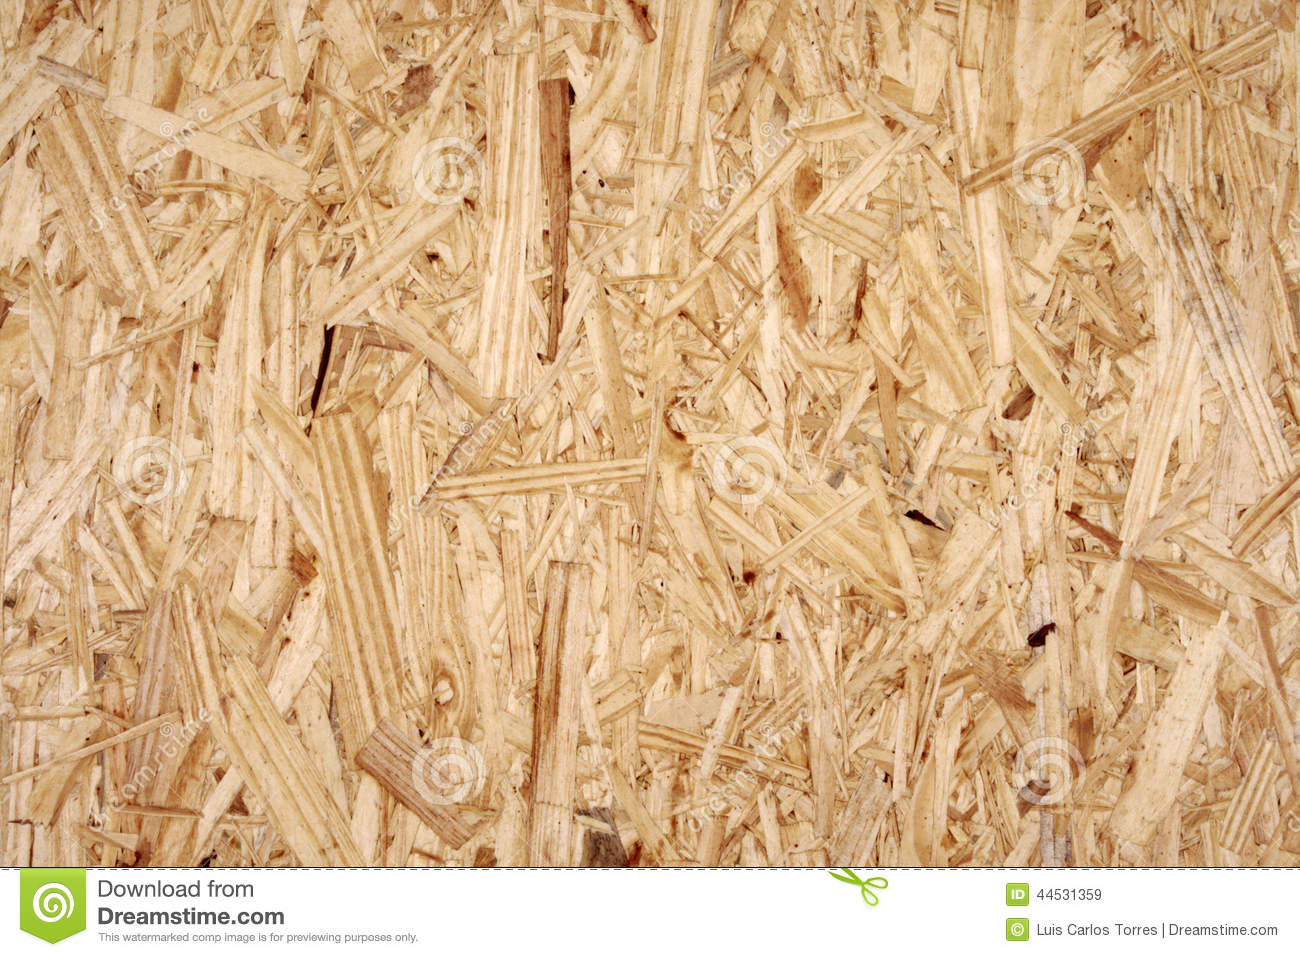 osb texture stock image image of slices construction 44531359. Black Bedroom Furniture Sets. Home Design Ideas